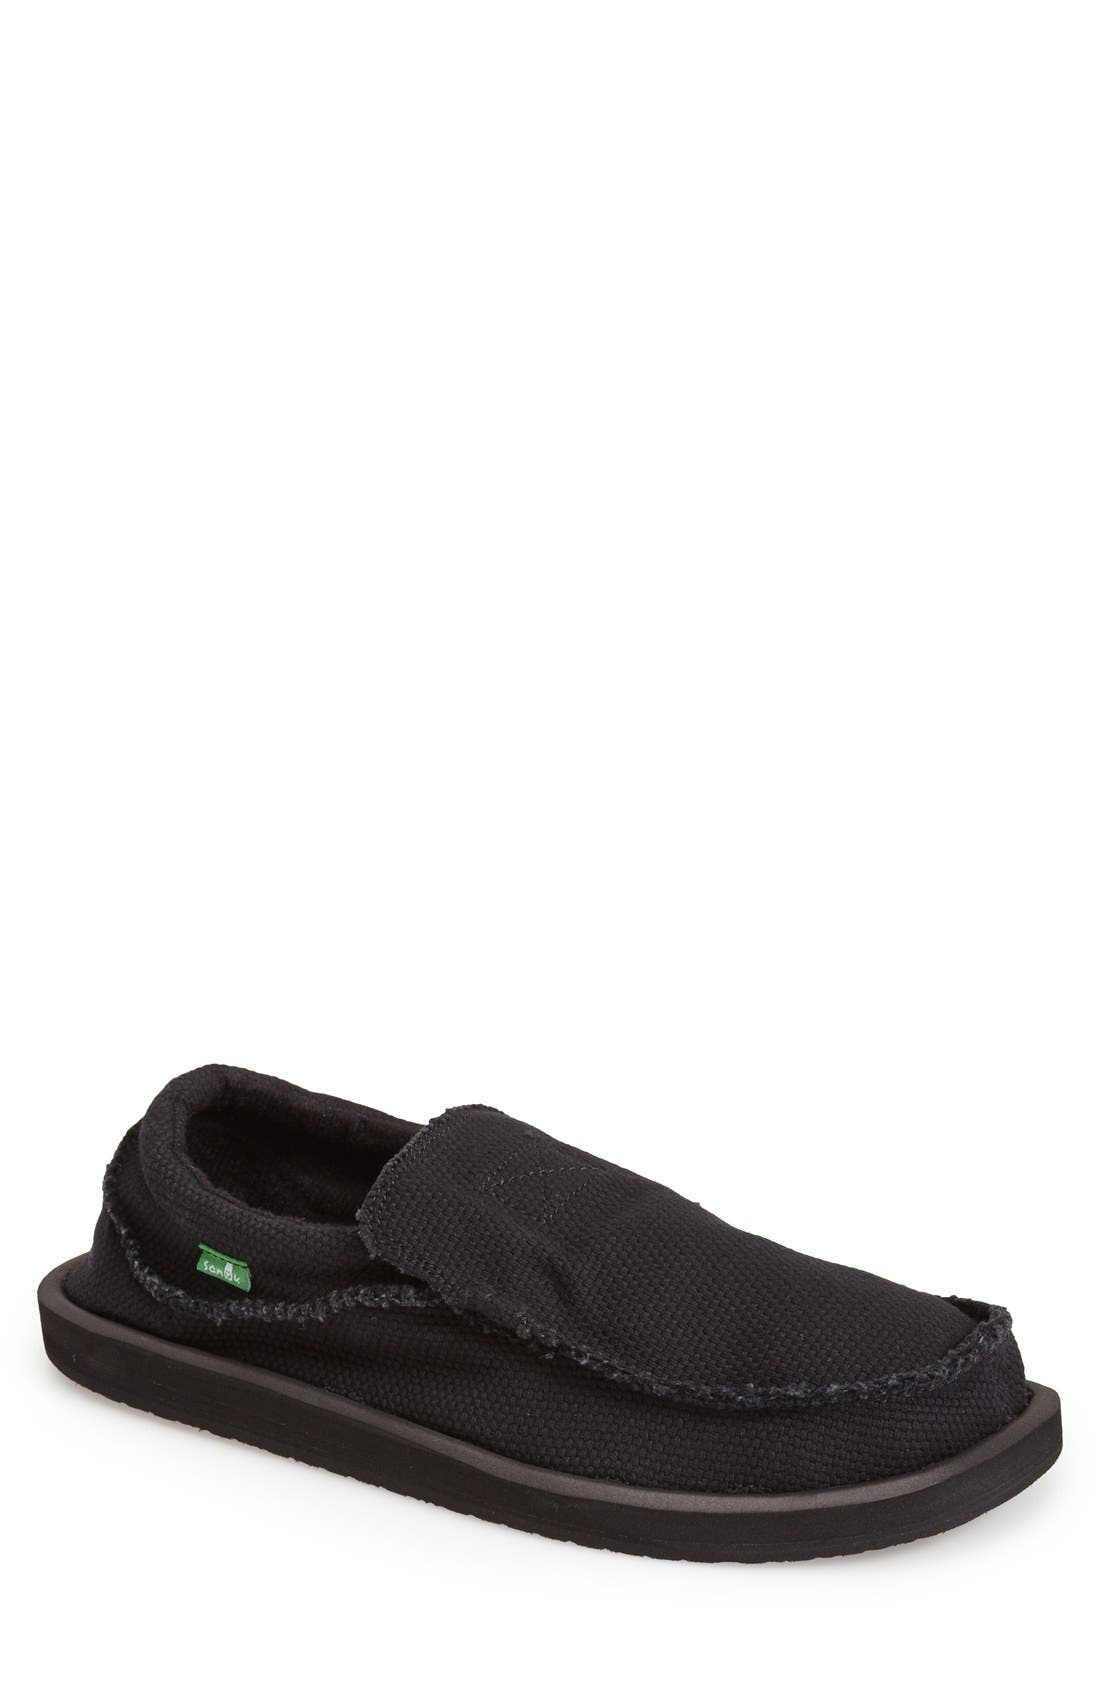 'Chiba' Slip-On,                             Main thumbnail 1, color,                             Blackout